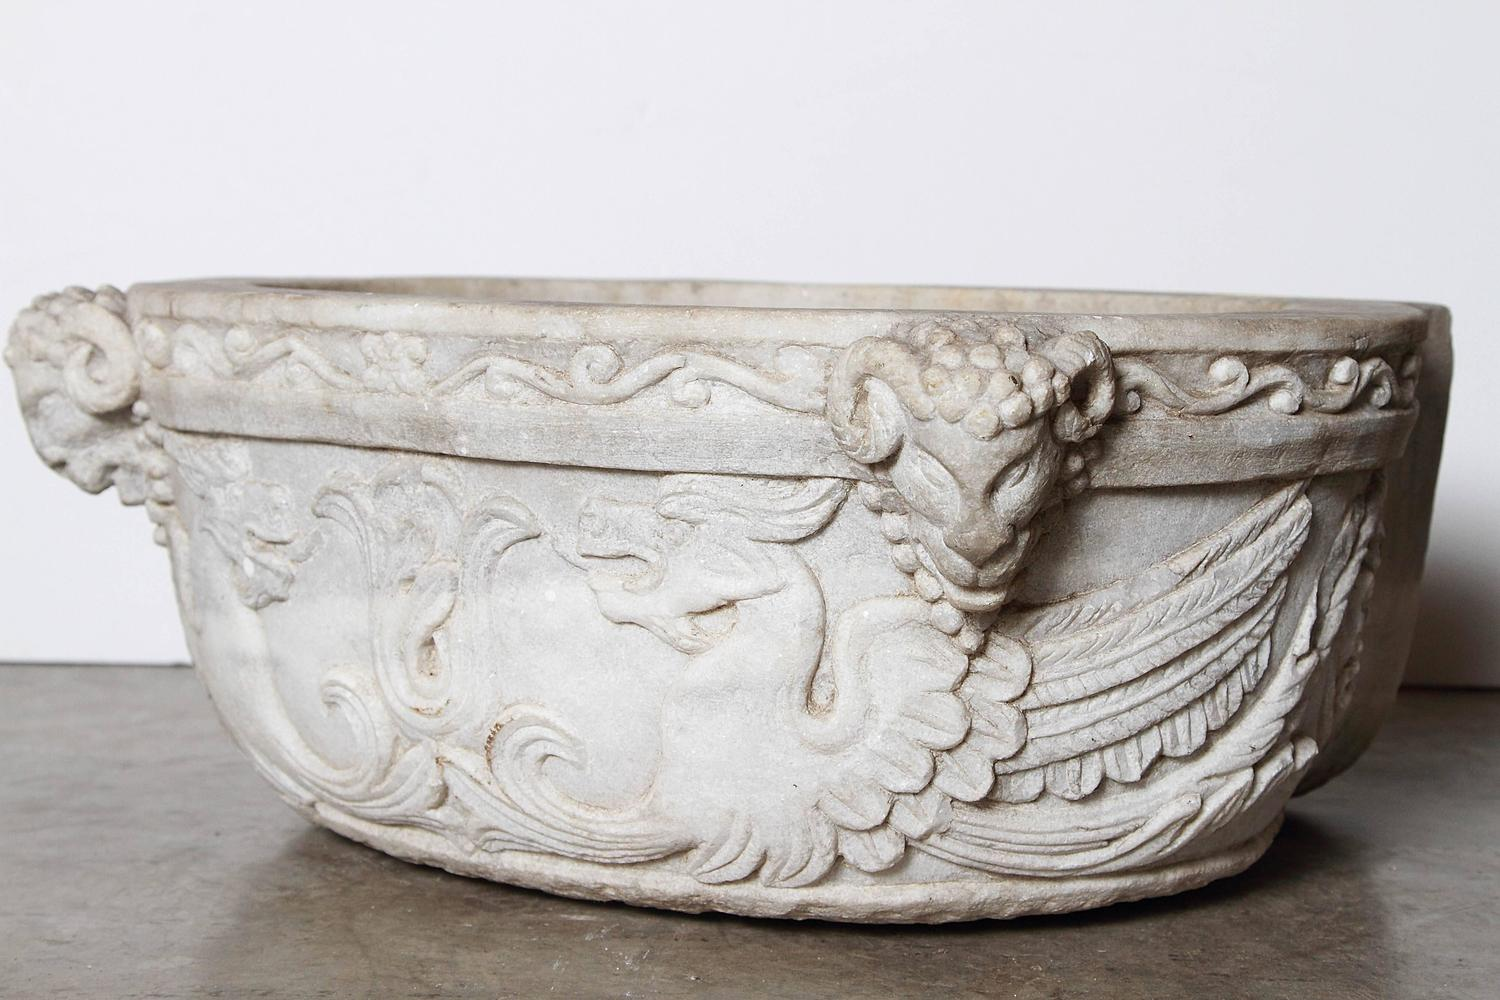 Carved Stone Sink : Carved Italian Marble Stoup or Sink, circa 1800 at 1stdibs